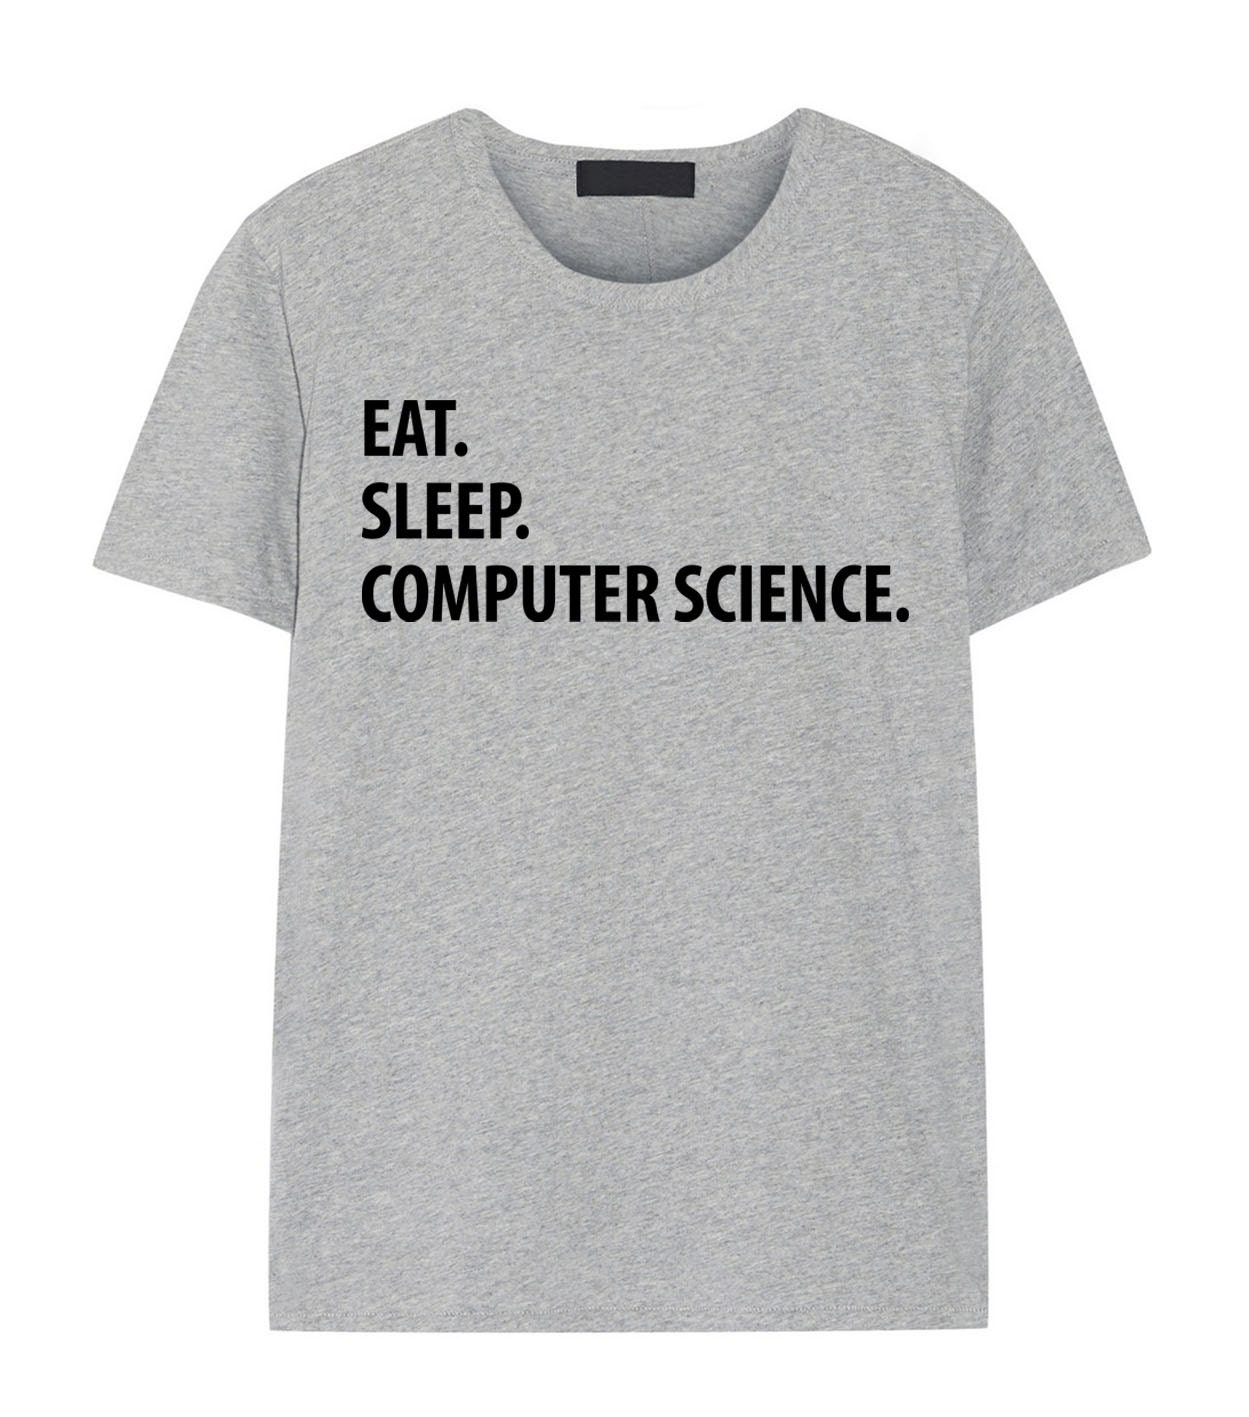 Computer Science T Shirt Eat Sleep Computer Science Tshirt Etsy